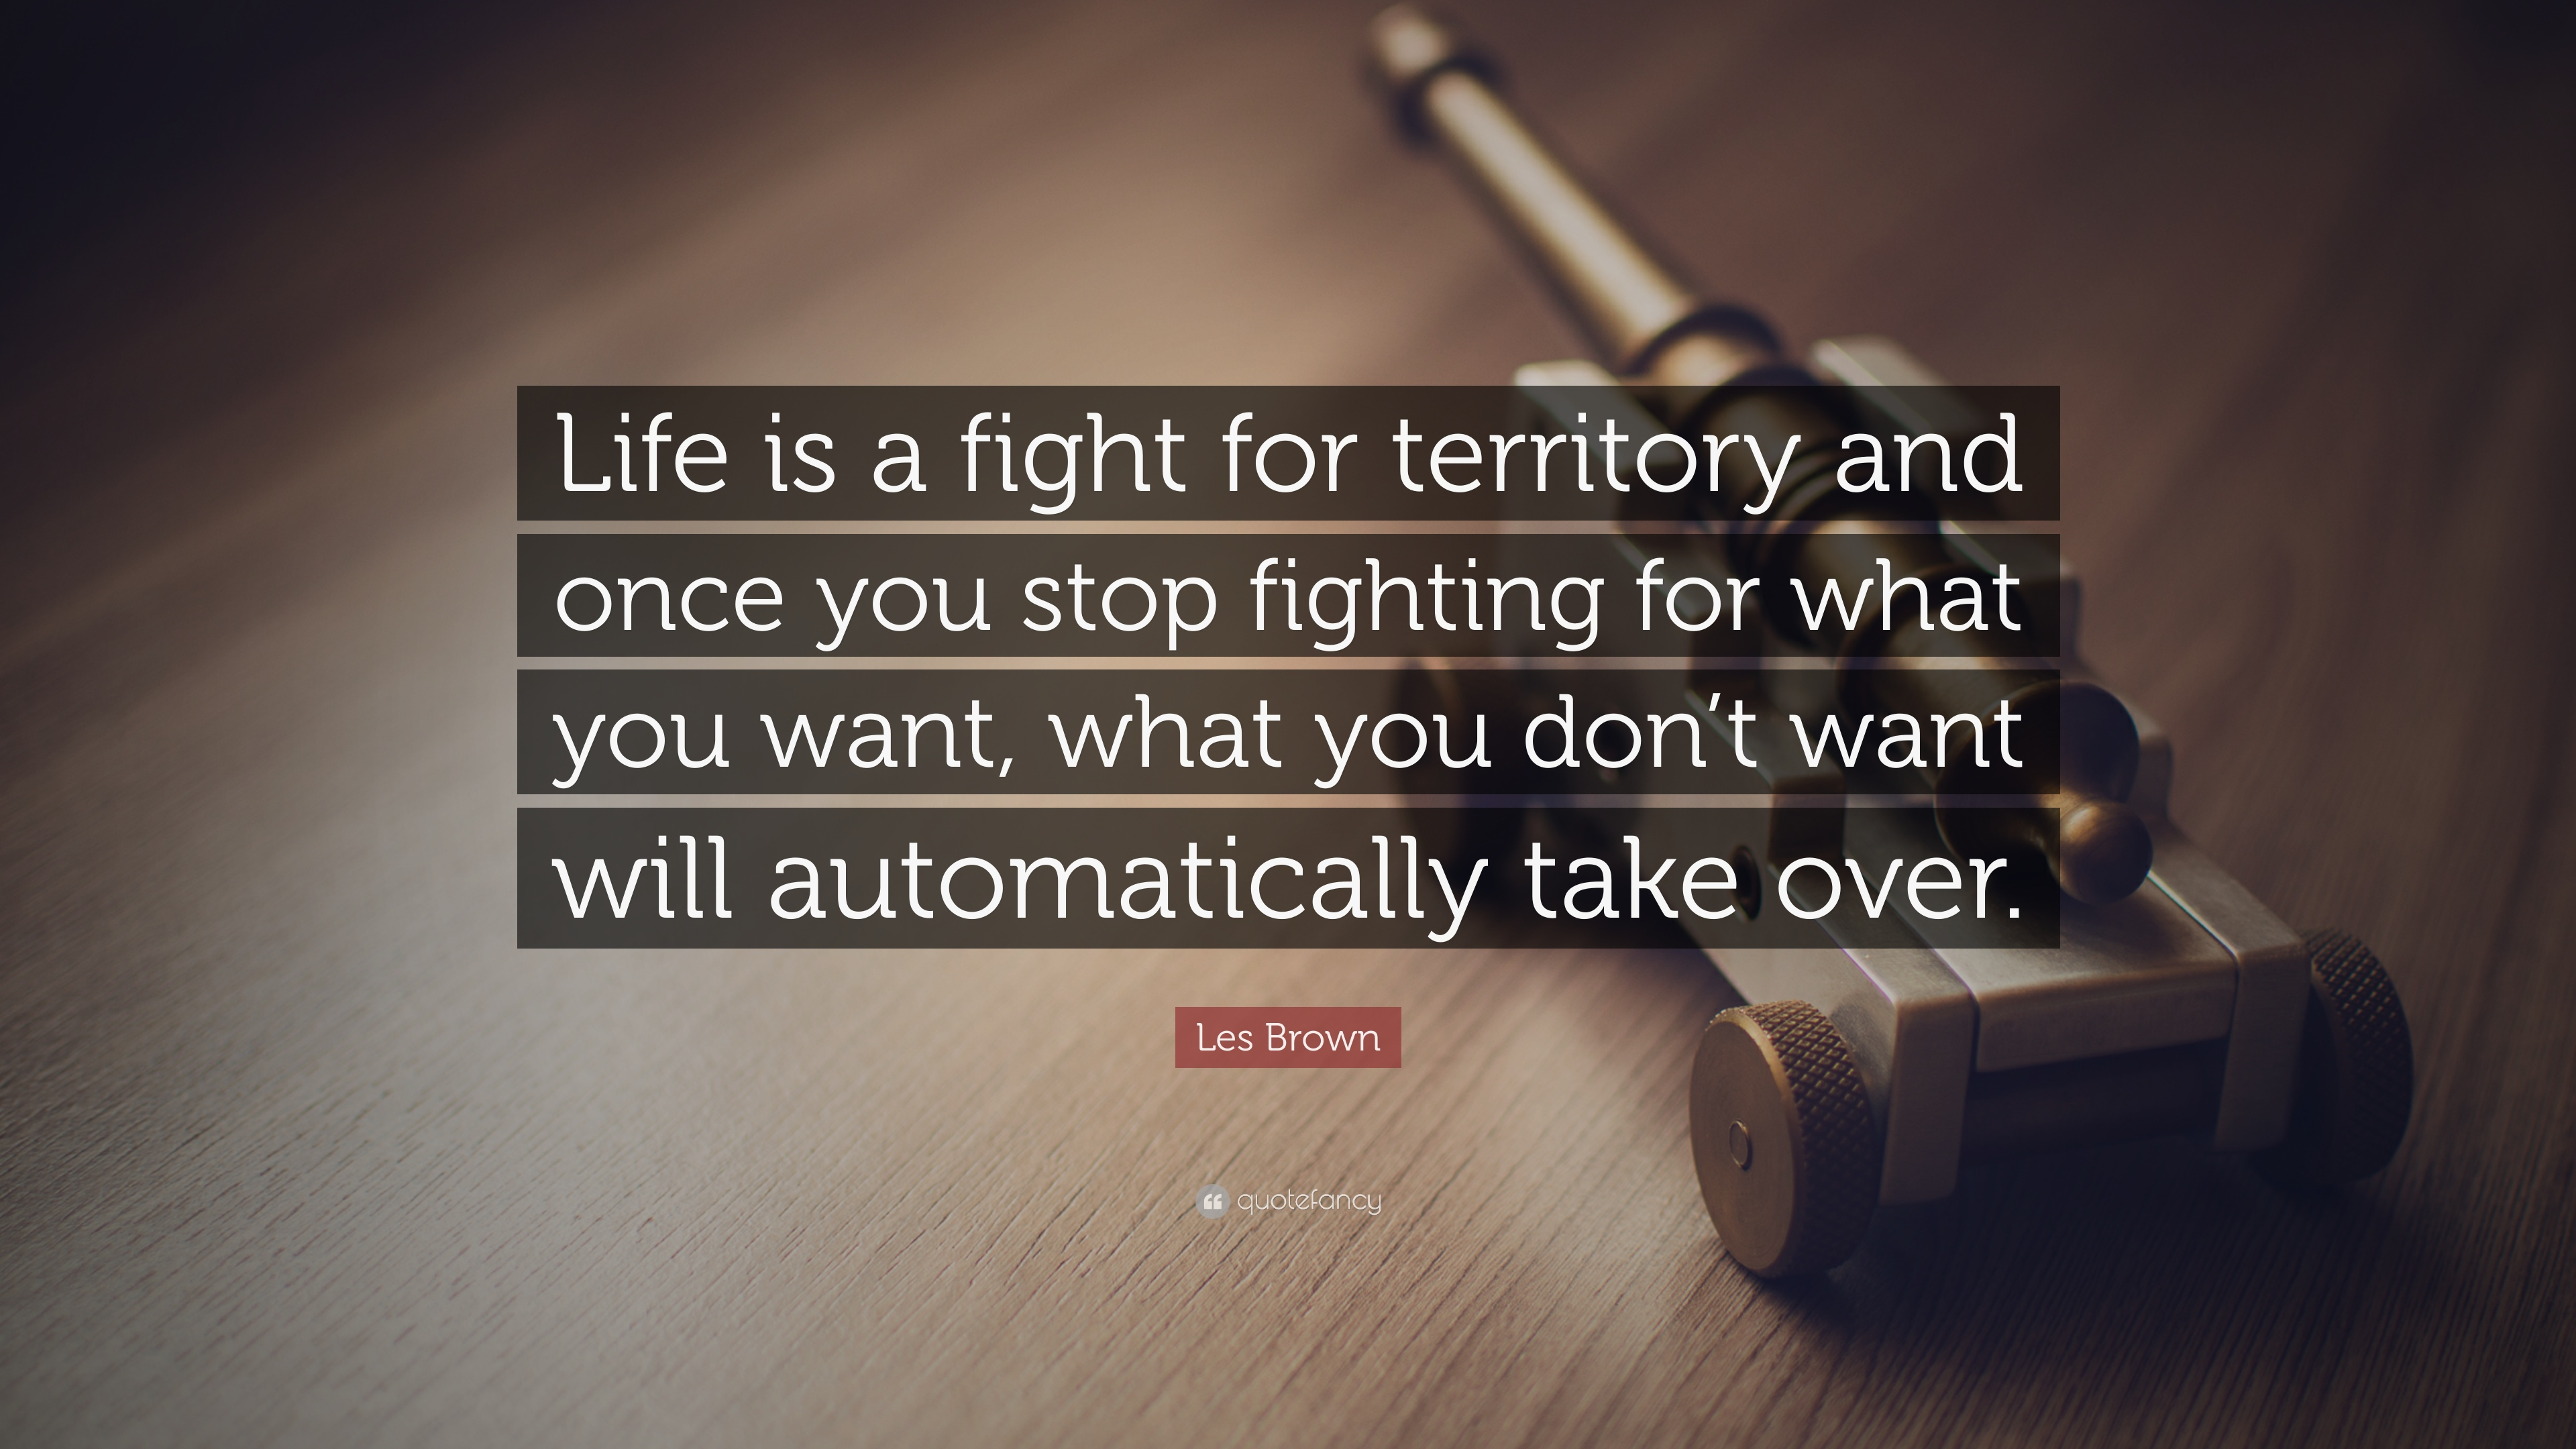 Fighting Quotes | Les Brown Quote Life Is A Fight For Territory And Once You Stop